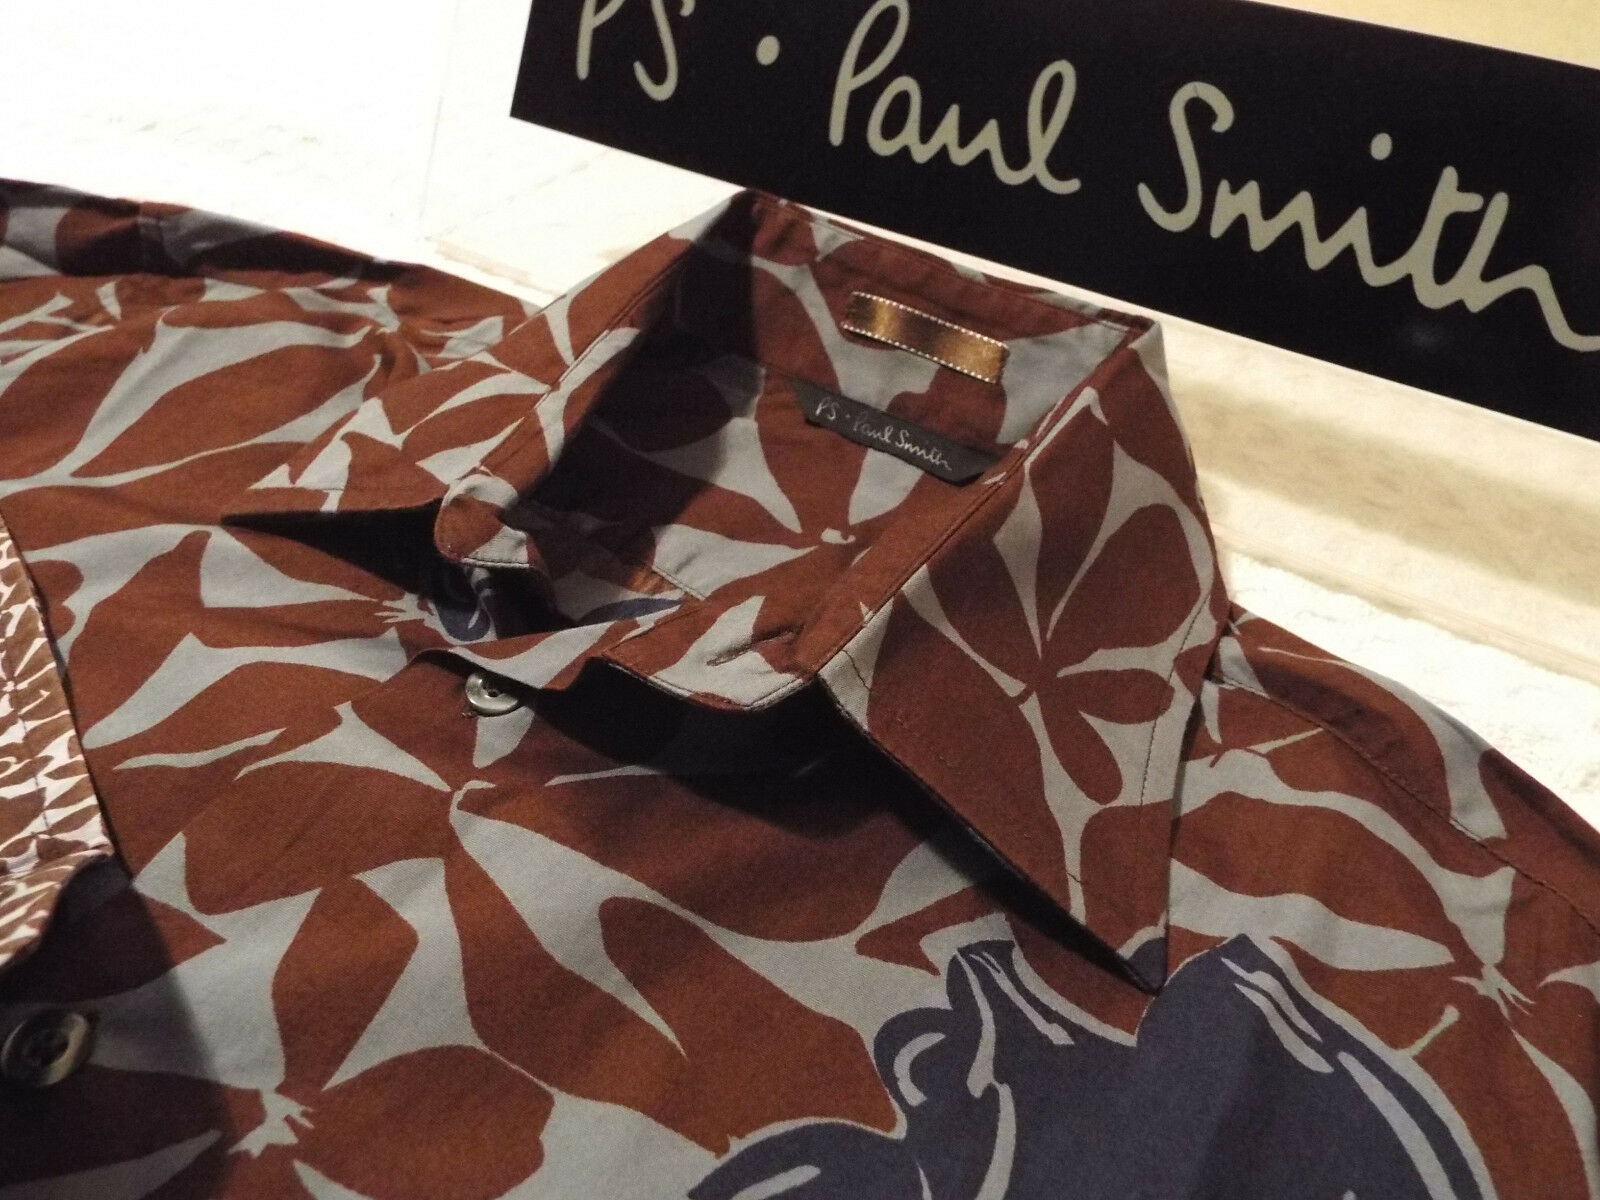 5266ffb35 PAUL SMITH Mens Shirt Size L (CHEST 44